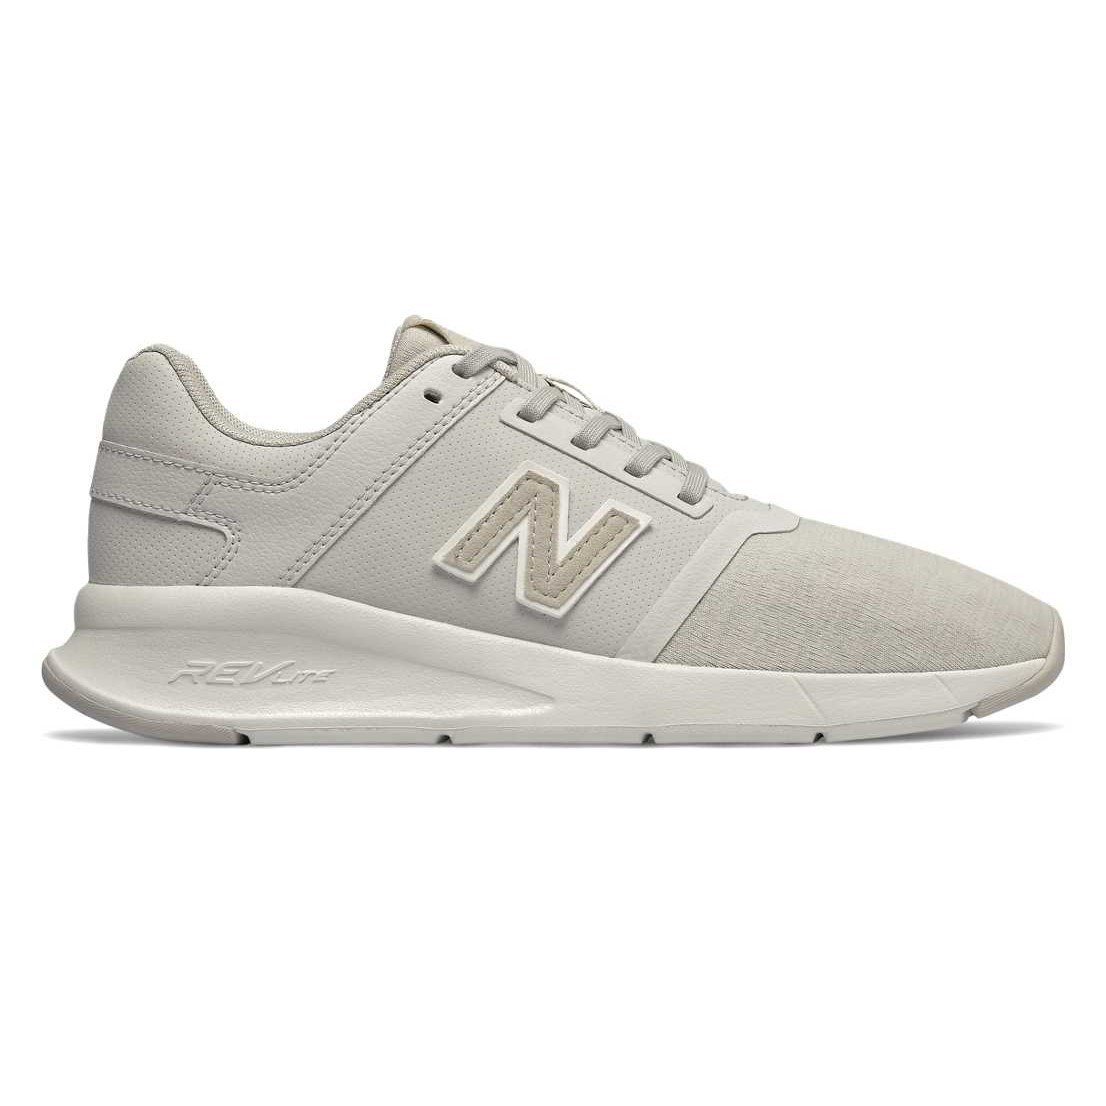 877a8af27c4 New Balance 24 v2 Lux - Womens Sneakers - Moonbeam White